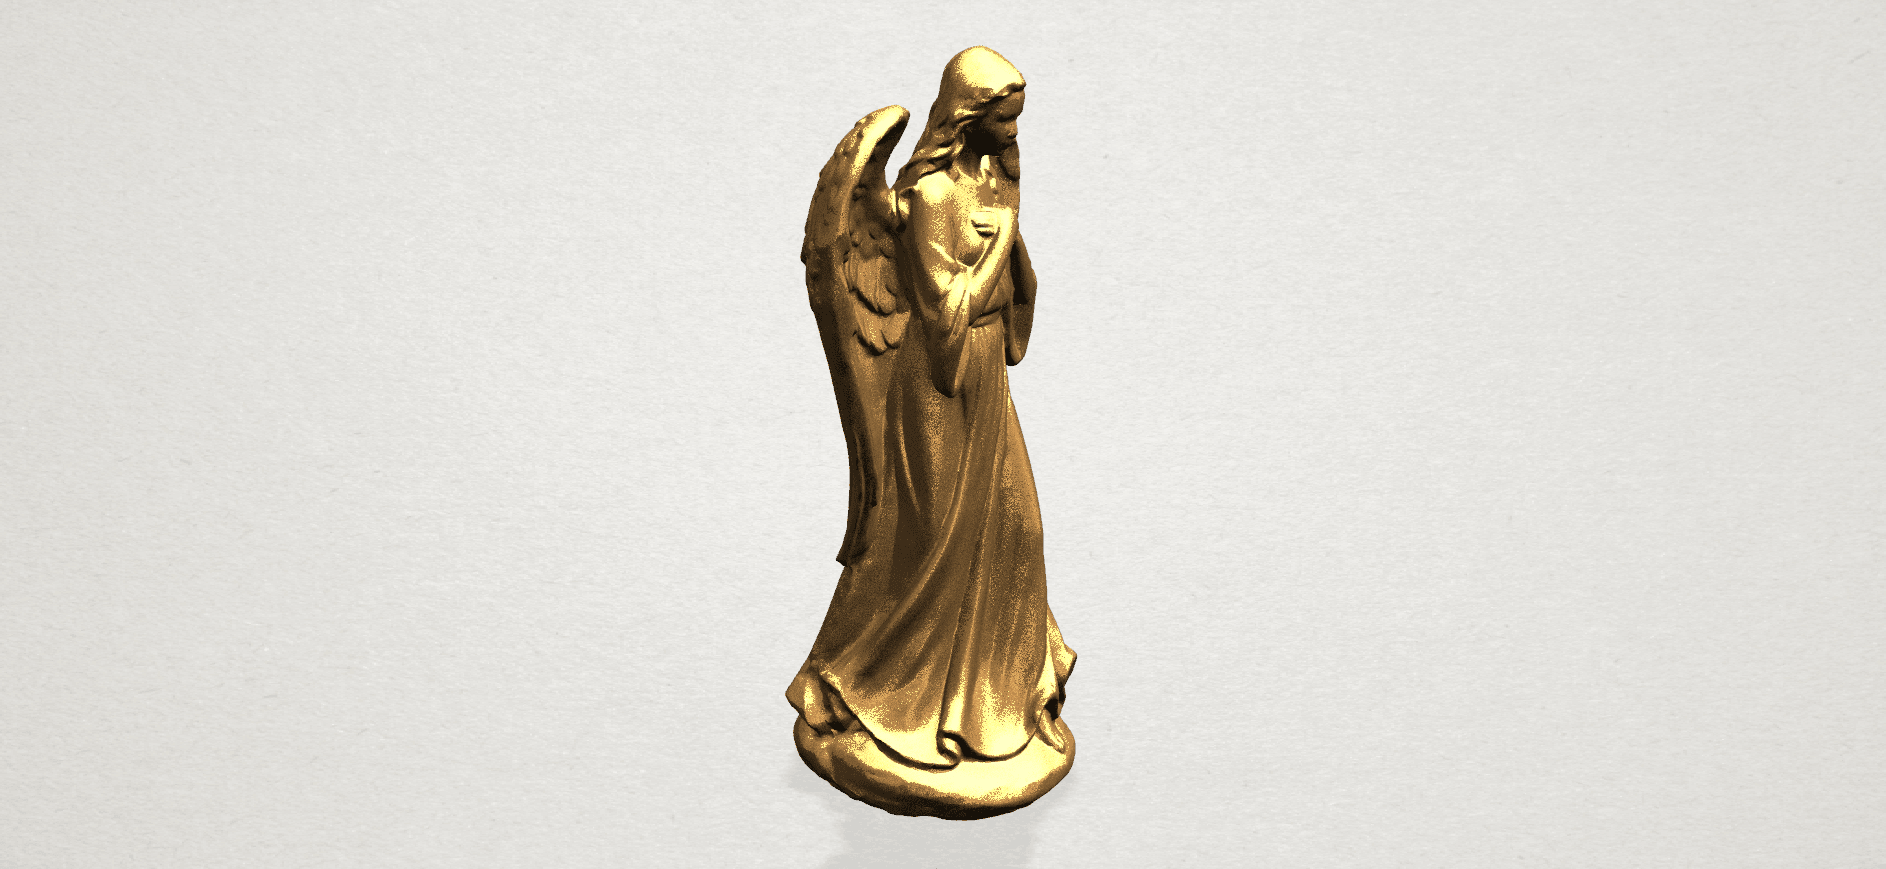 Angel A04.png Download free STL file Angel 01 • 3D printer object, GeorgesNikkei